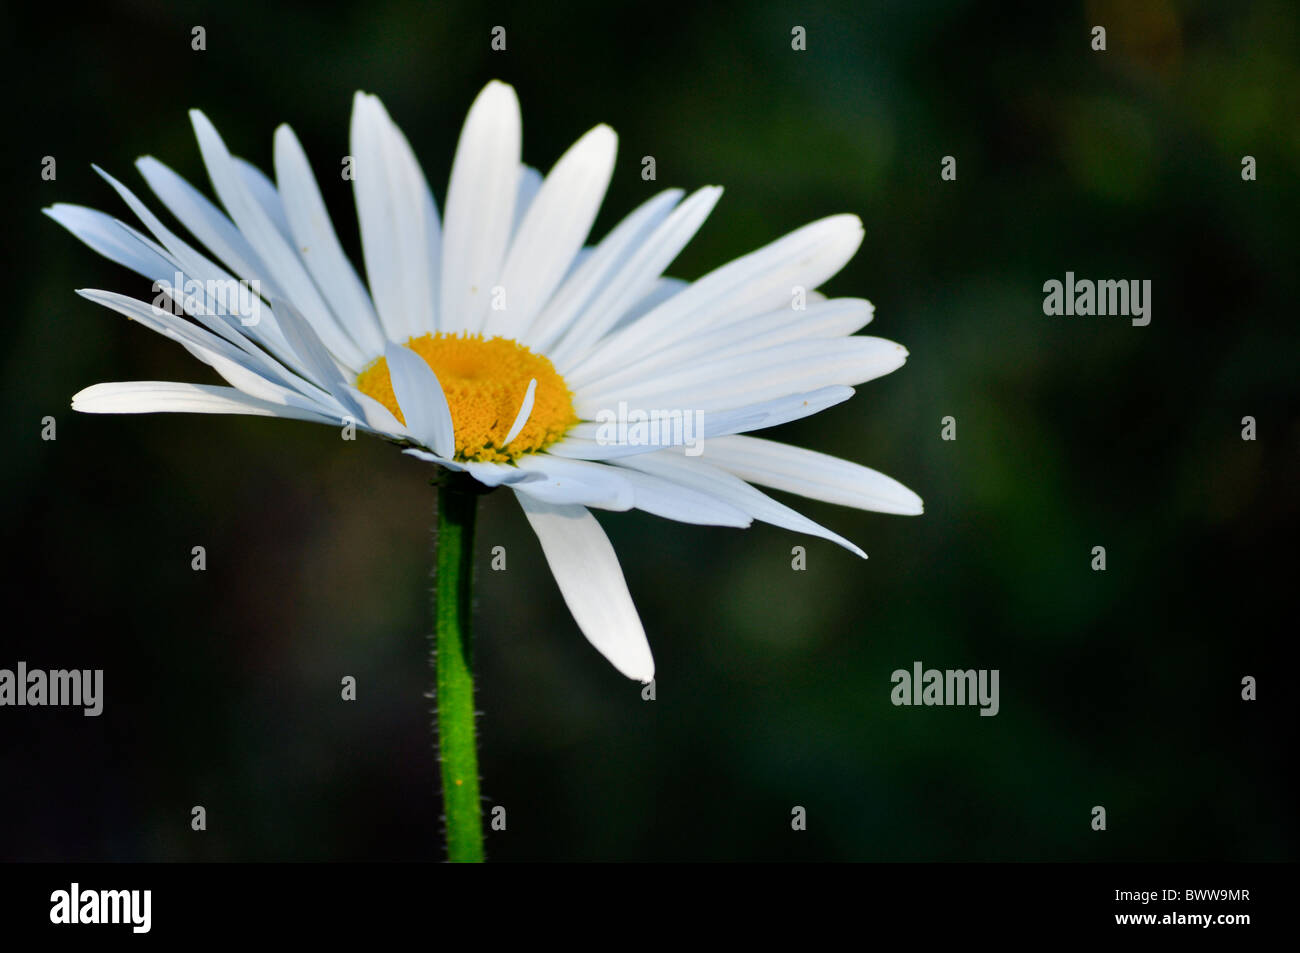 one single daisy white isolated on dark background - Stock Image